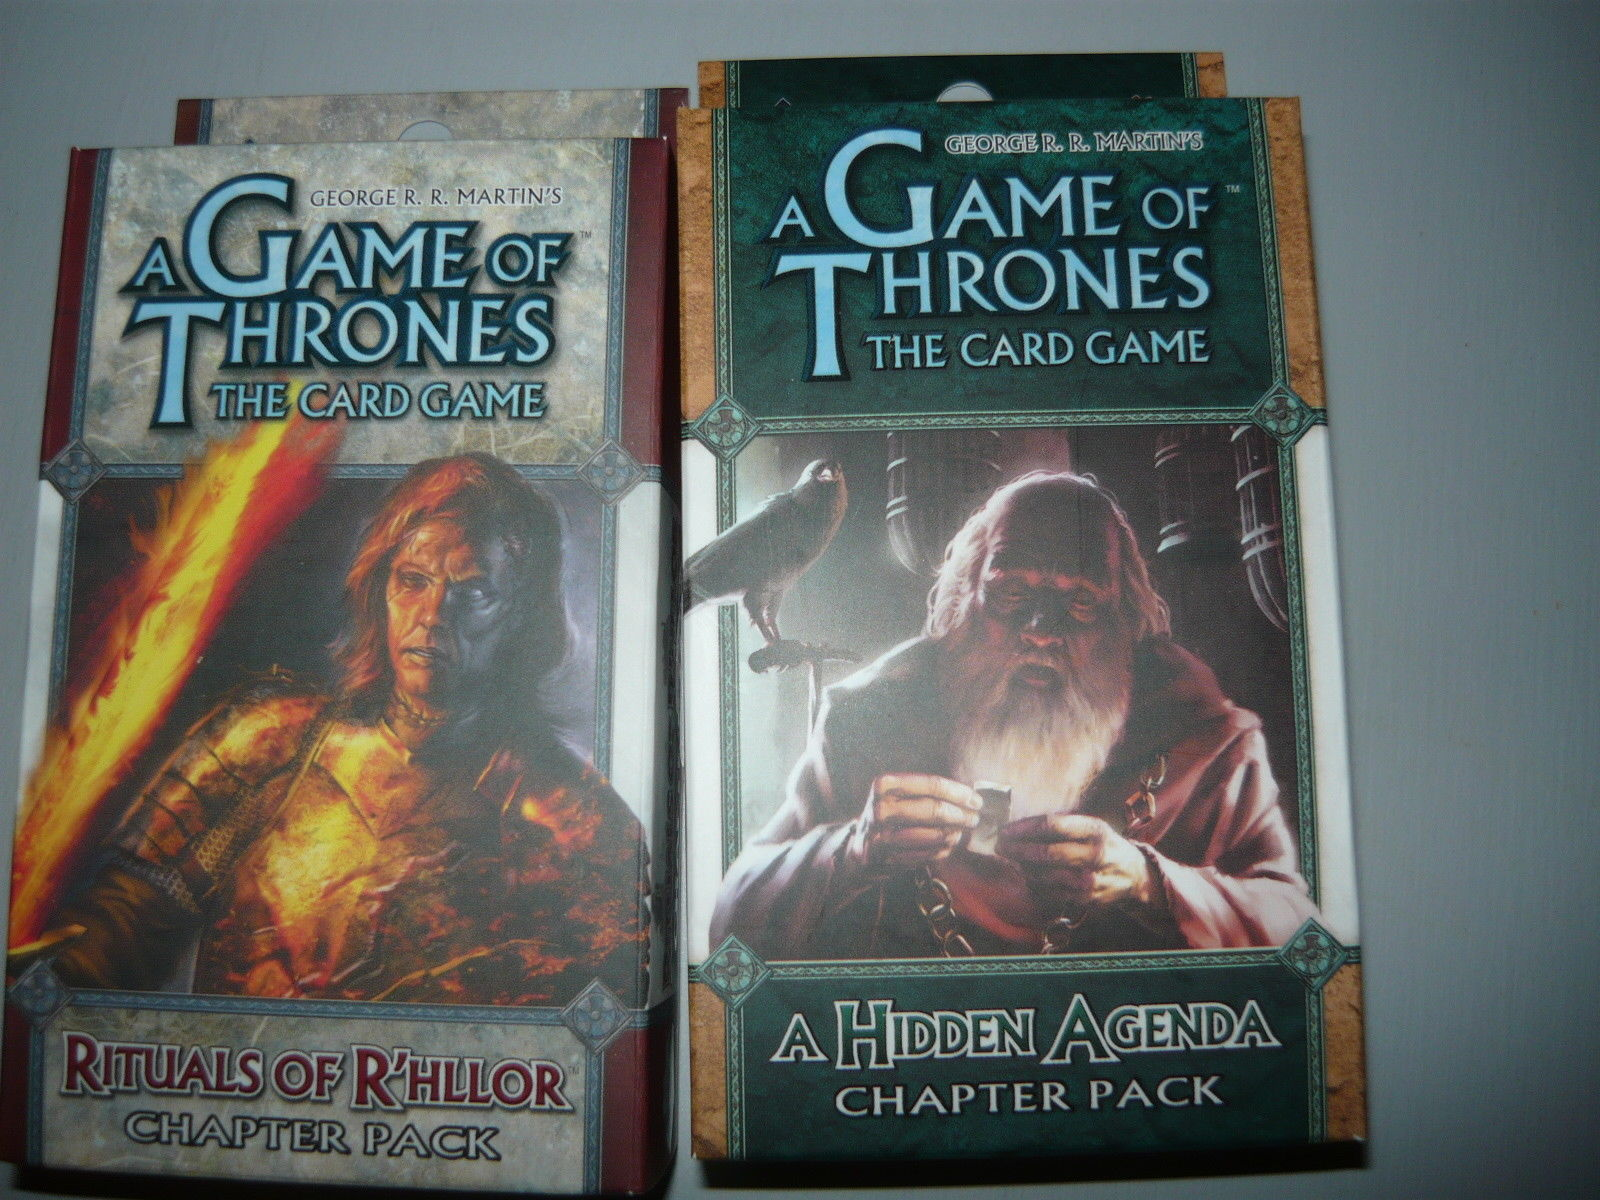 A Game of Thrones chapter pack lot of 2 rules of rhllor a hidden agenda